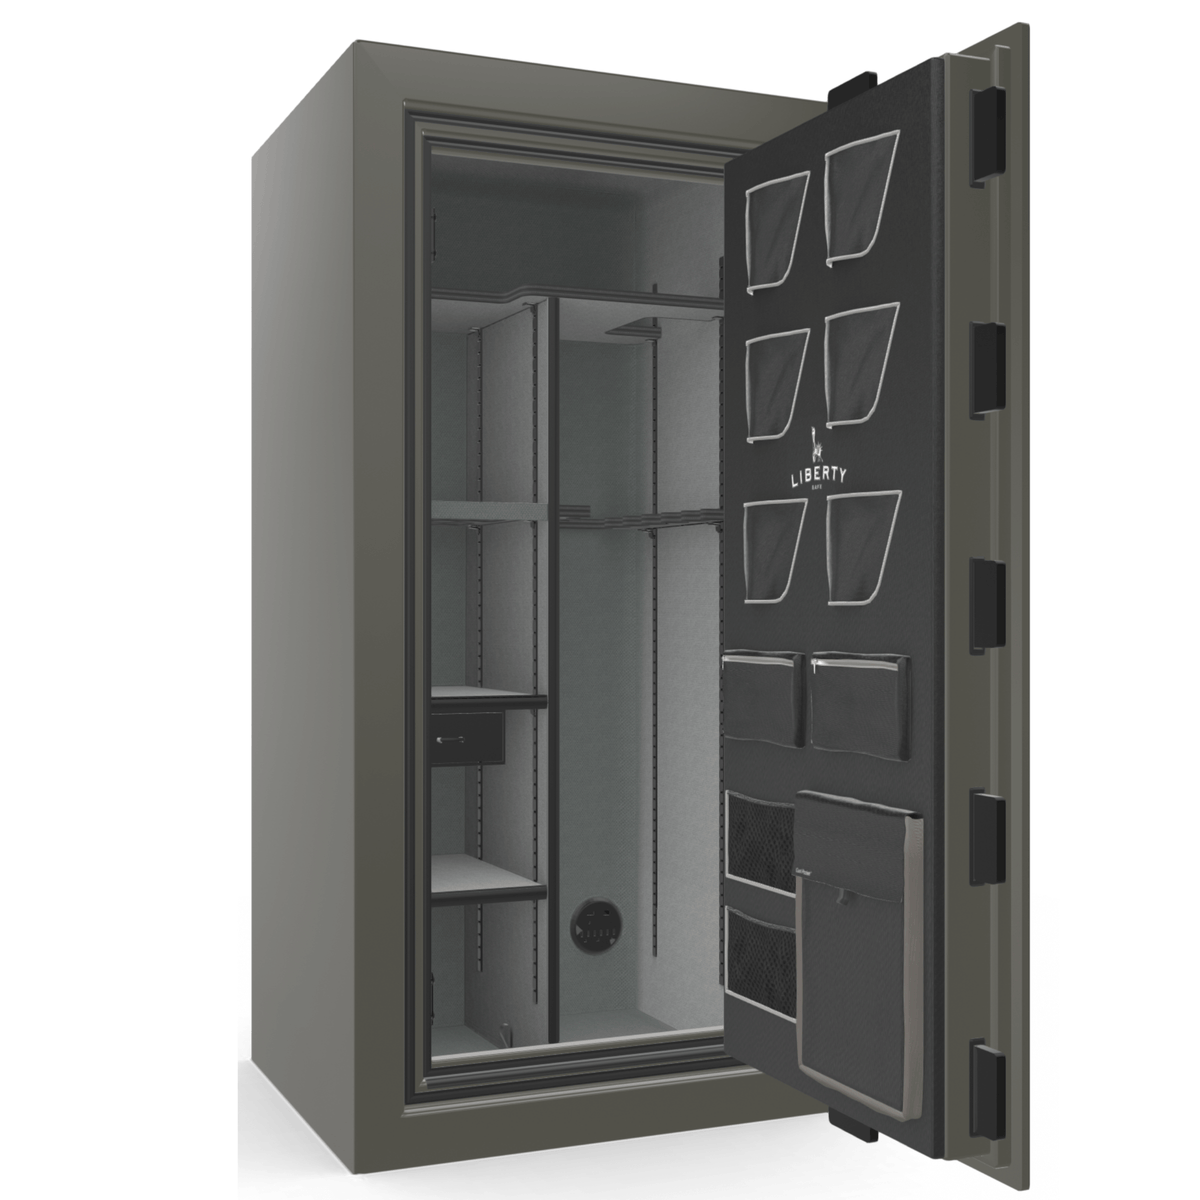 "Classic Plus Series | Level 7 Security | 110 Minute Fire Protection | 40 | DIMENSIONS: 66.5""(H) X 36""(W) X 32""(D) 